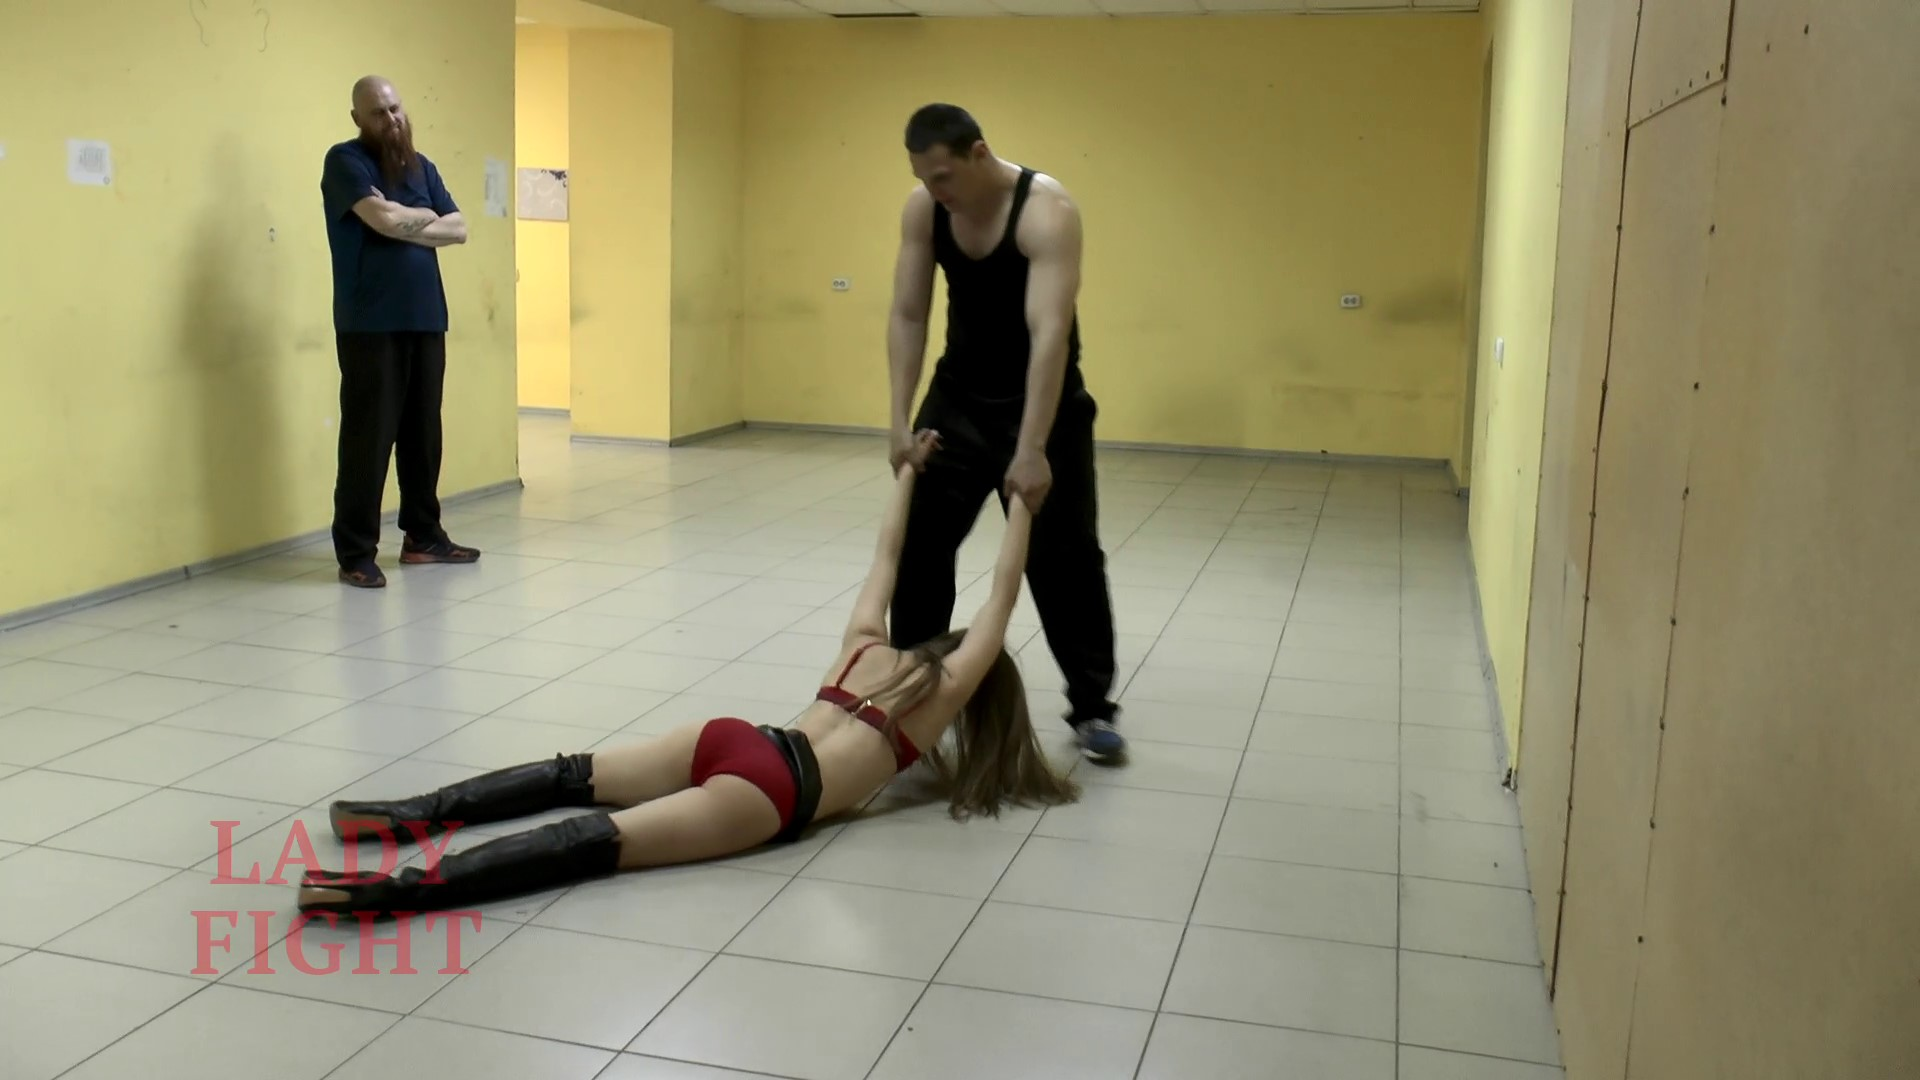 LADYFIGHT-Deadly-Wrestling-For-Lora-127